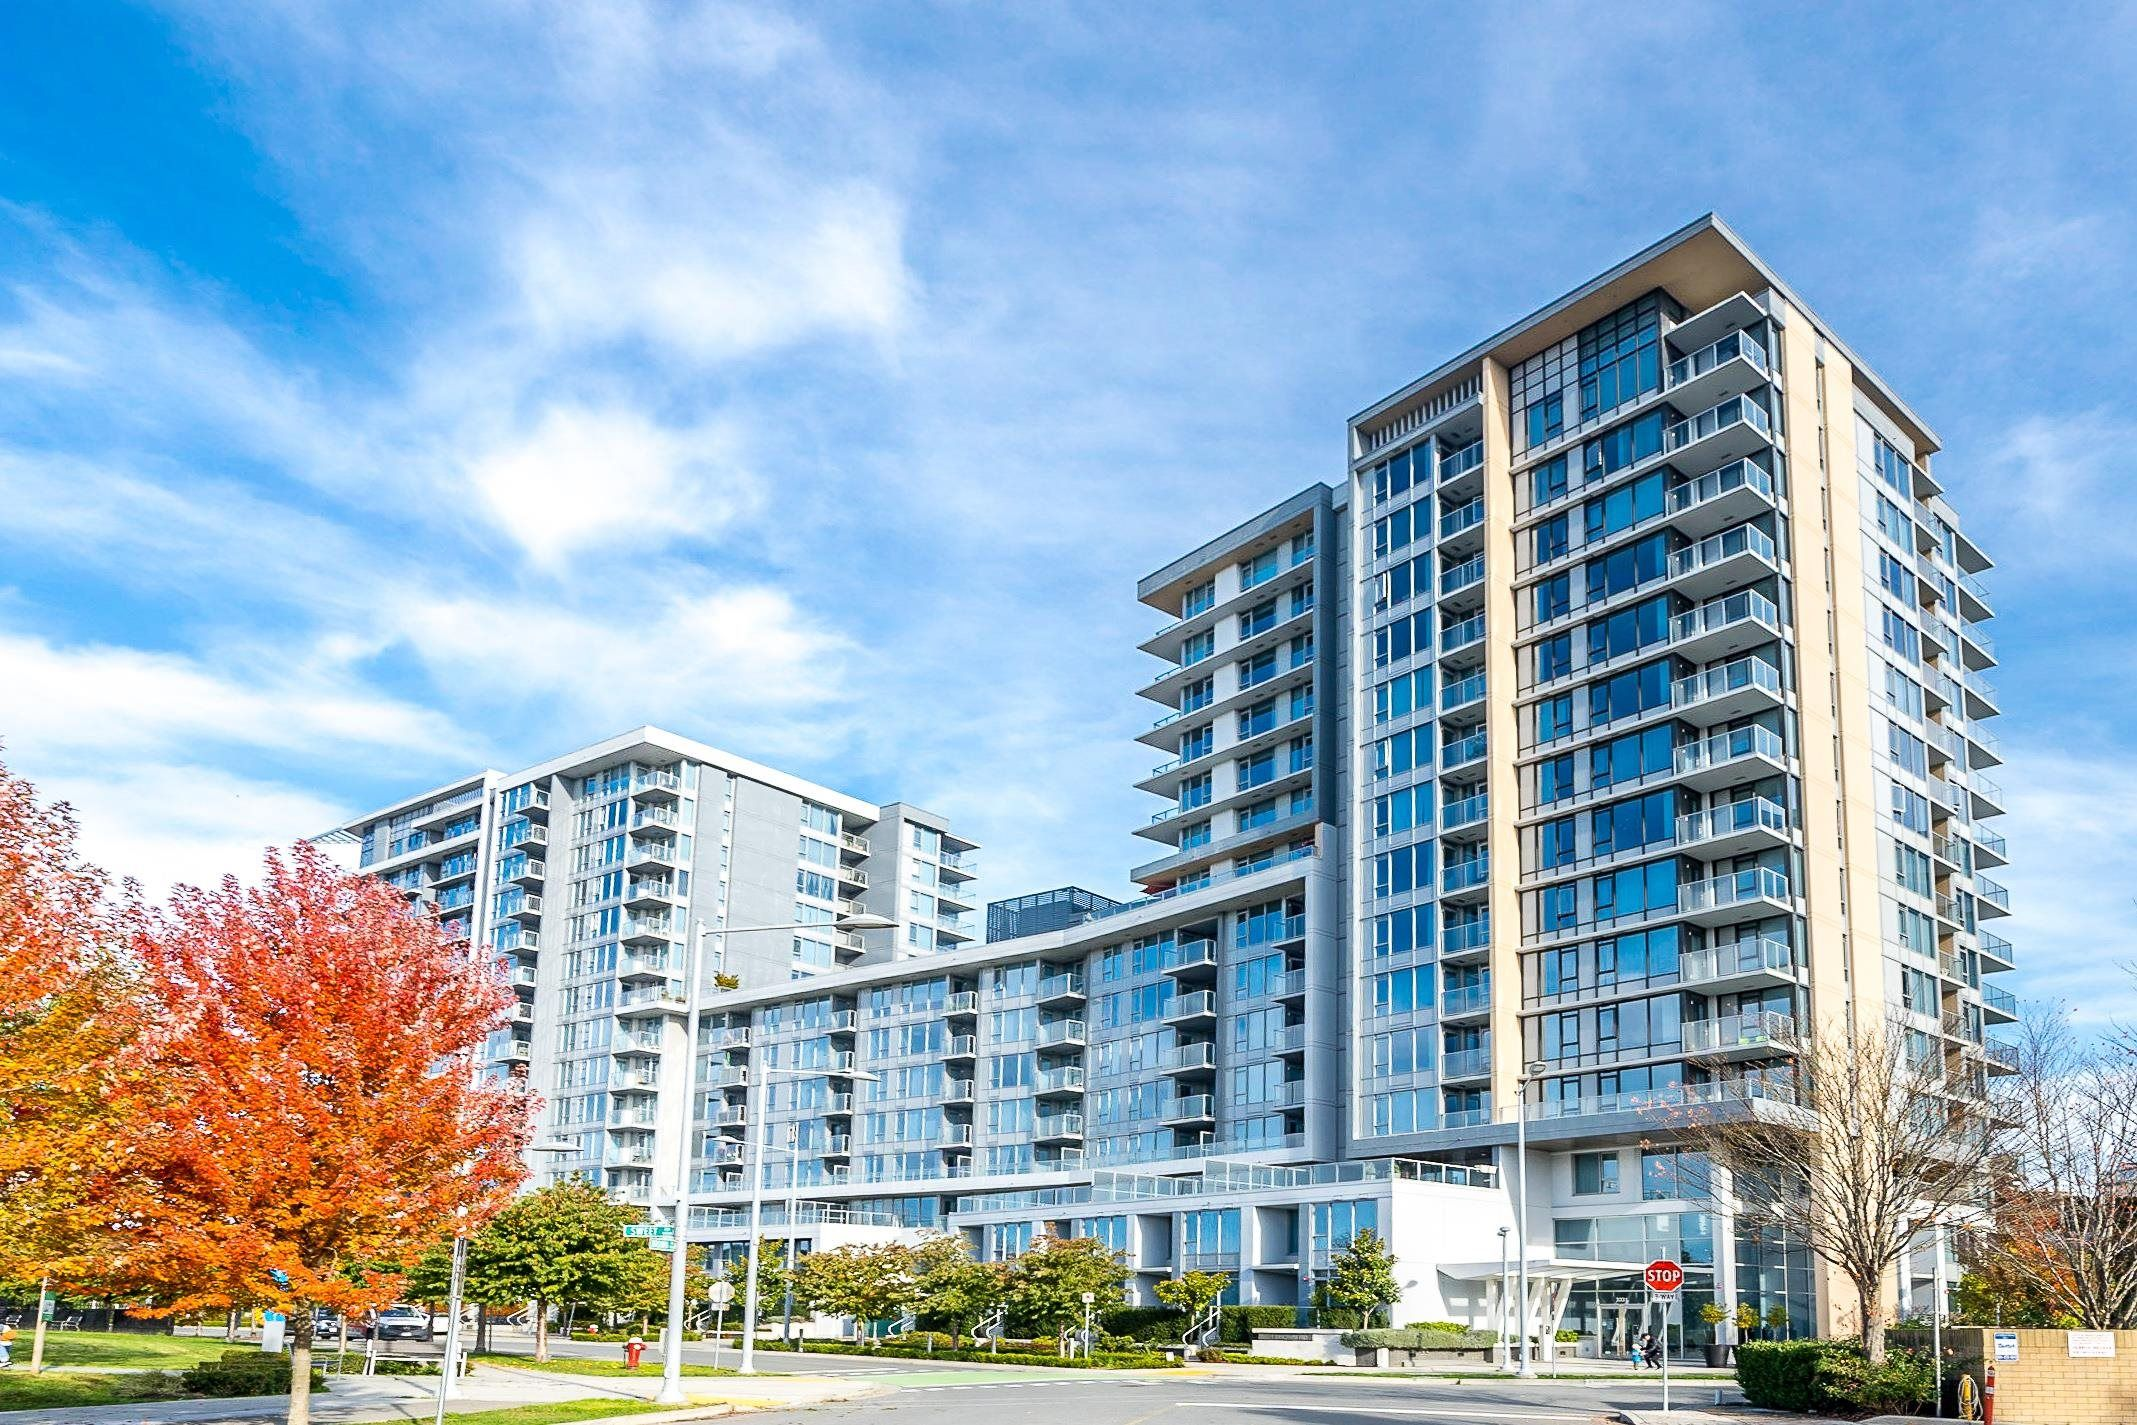 """Main Photo: 807 3331 BROWN Road in Richmond: West Cambie Condo for sale in """"AVANTI 2 by Polygon"""" : MLS®# R2623901"""